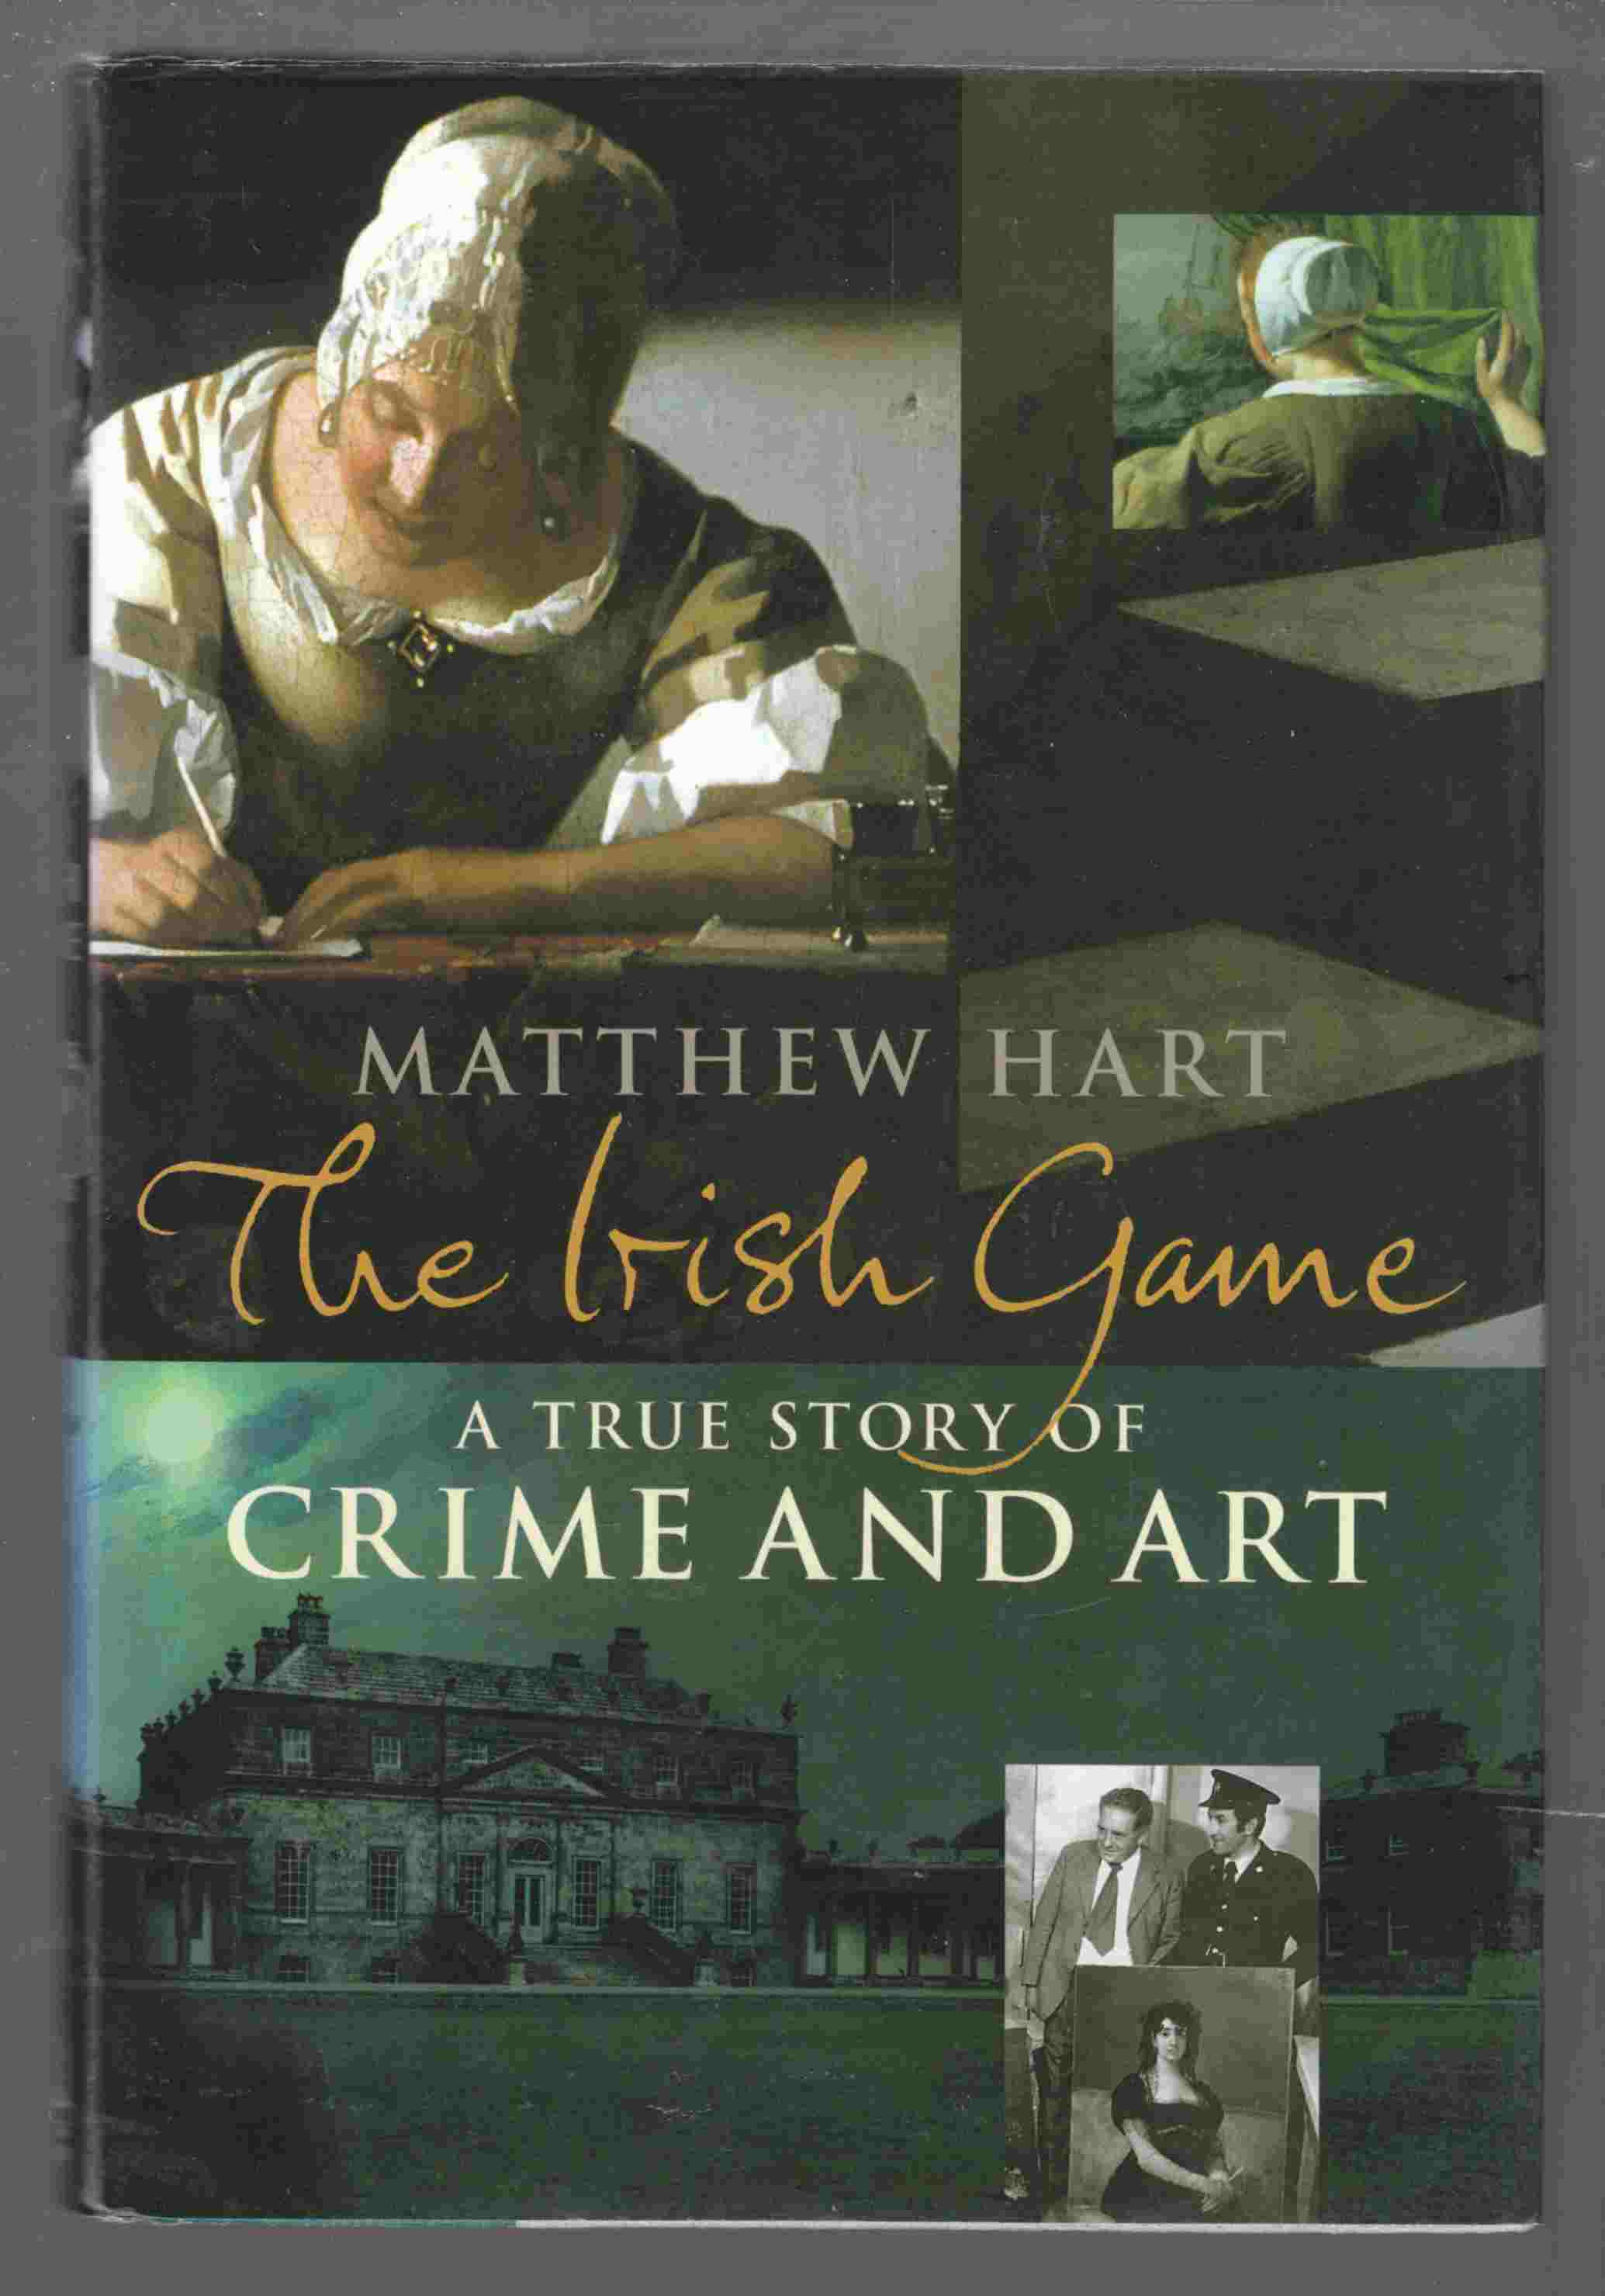 Image for The Irish Game A True Story of Crime and Art